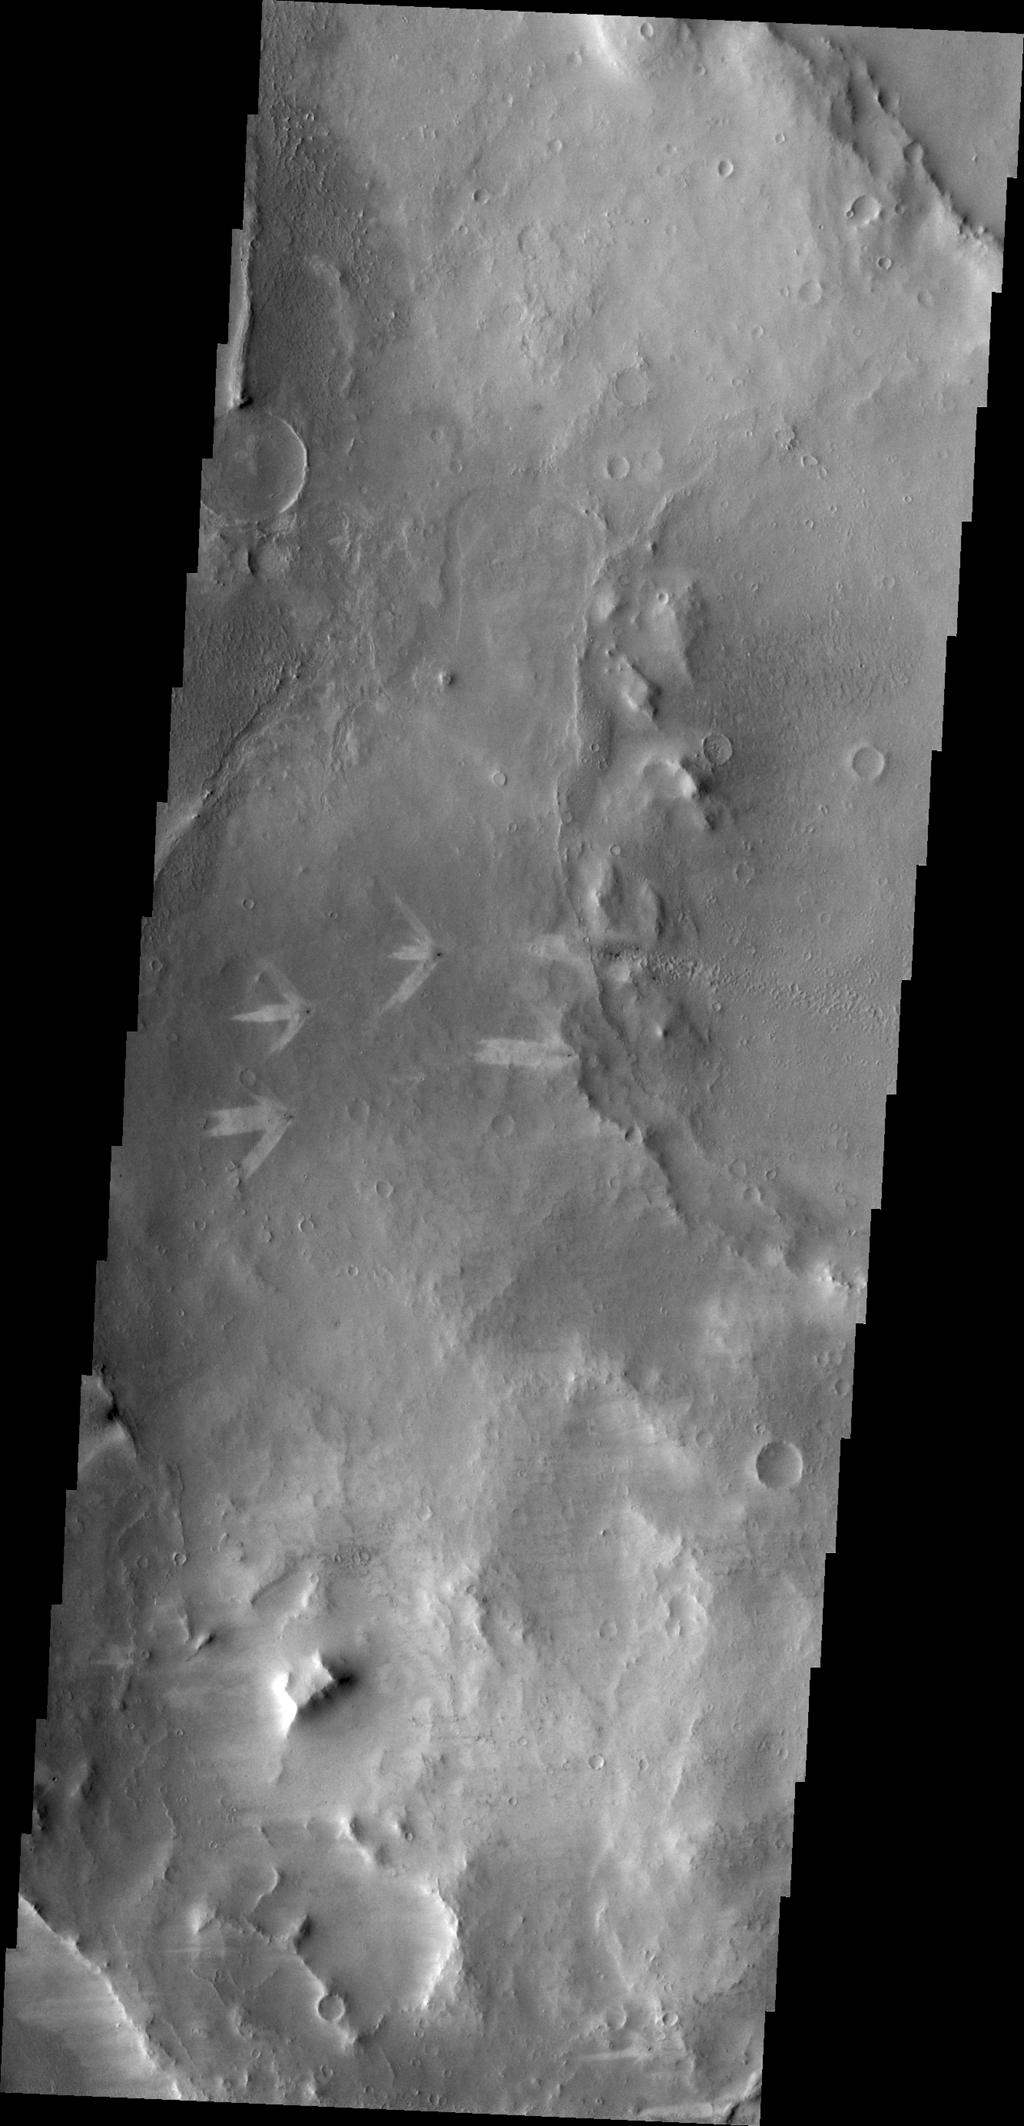 The triple tails of windstreaks behind these small craters in Arabia Terra indicate multiple wind directions in the area in this image from NASA's Mars Odyssey.